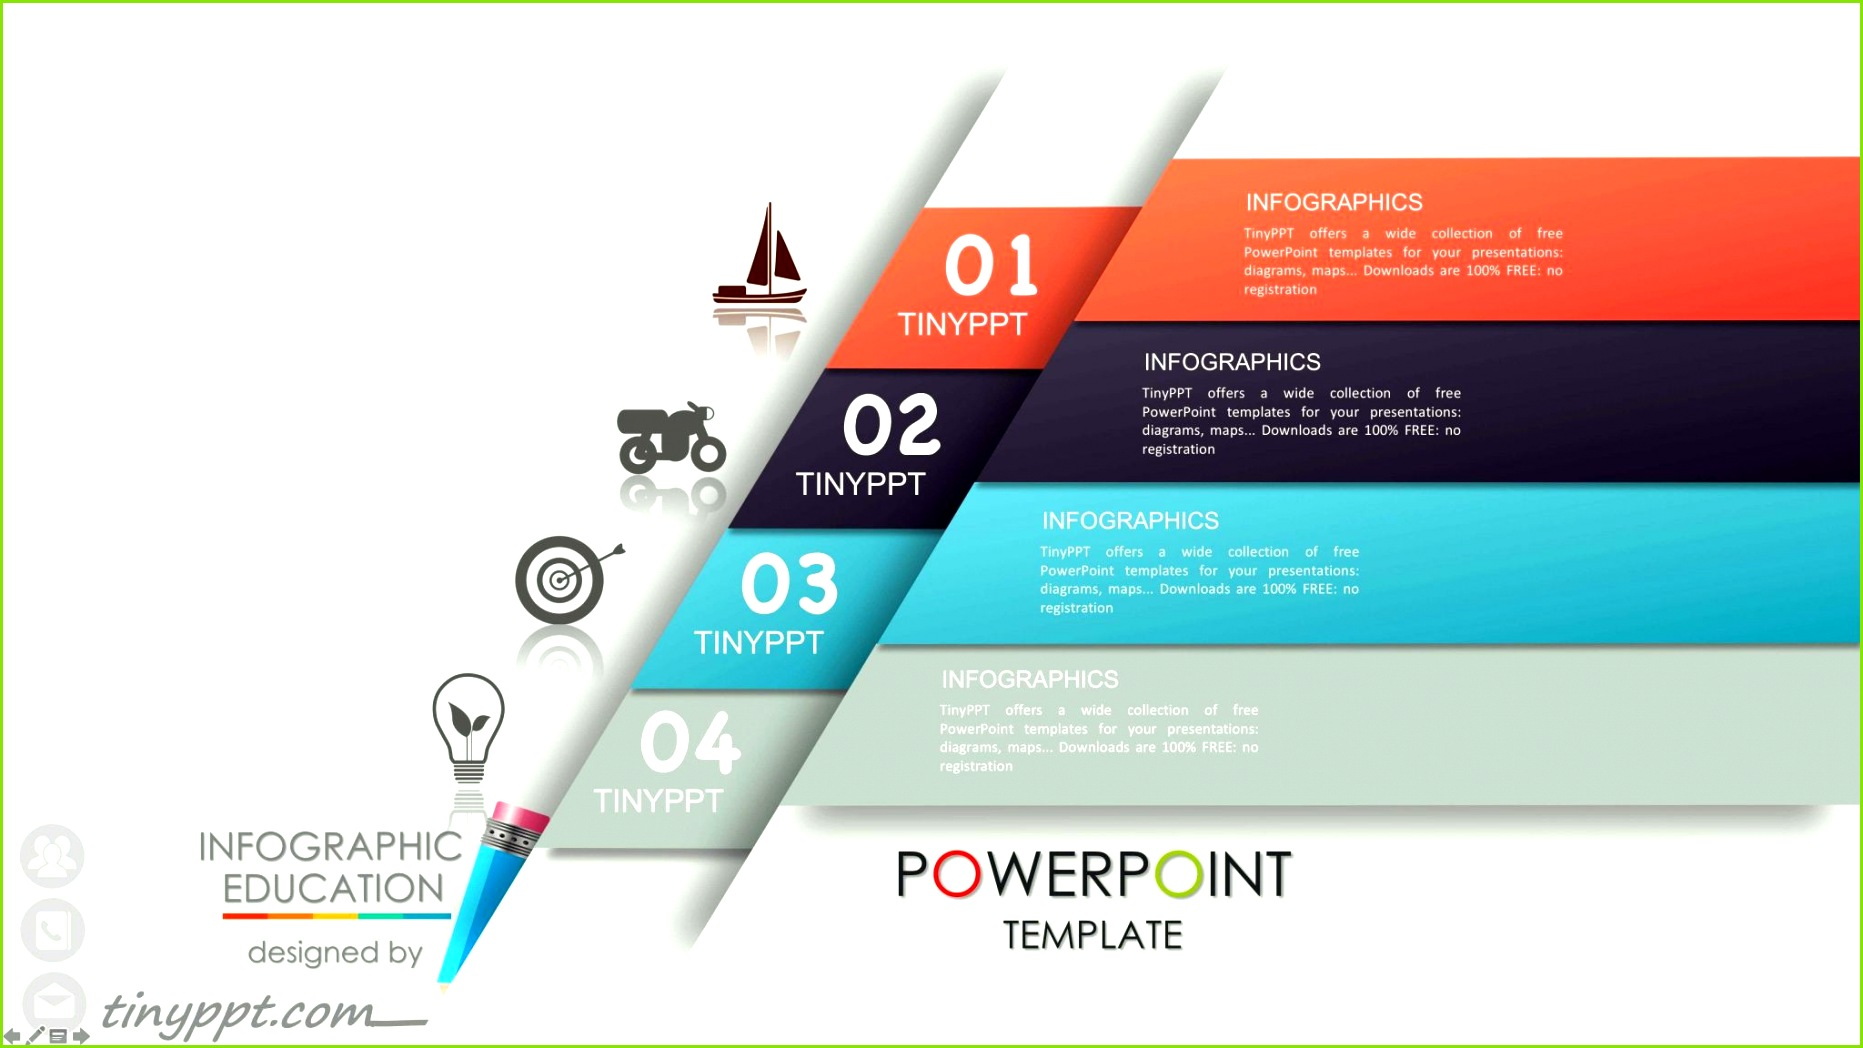 Powerpoint Report Templates To her With Arabic Infographic – ¢‹†…¡ ¢‹†…¡ Ppt 0d Nanostructures Nanoparticles